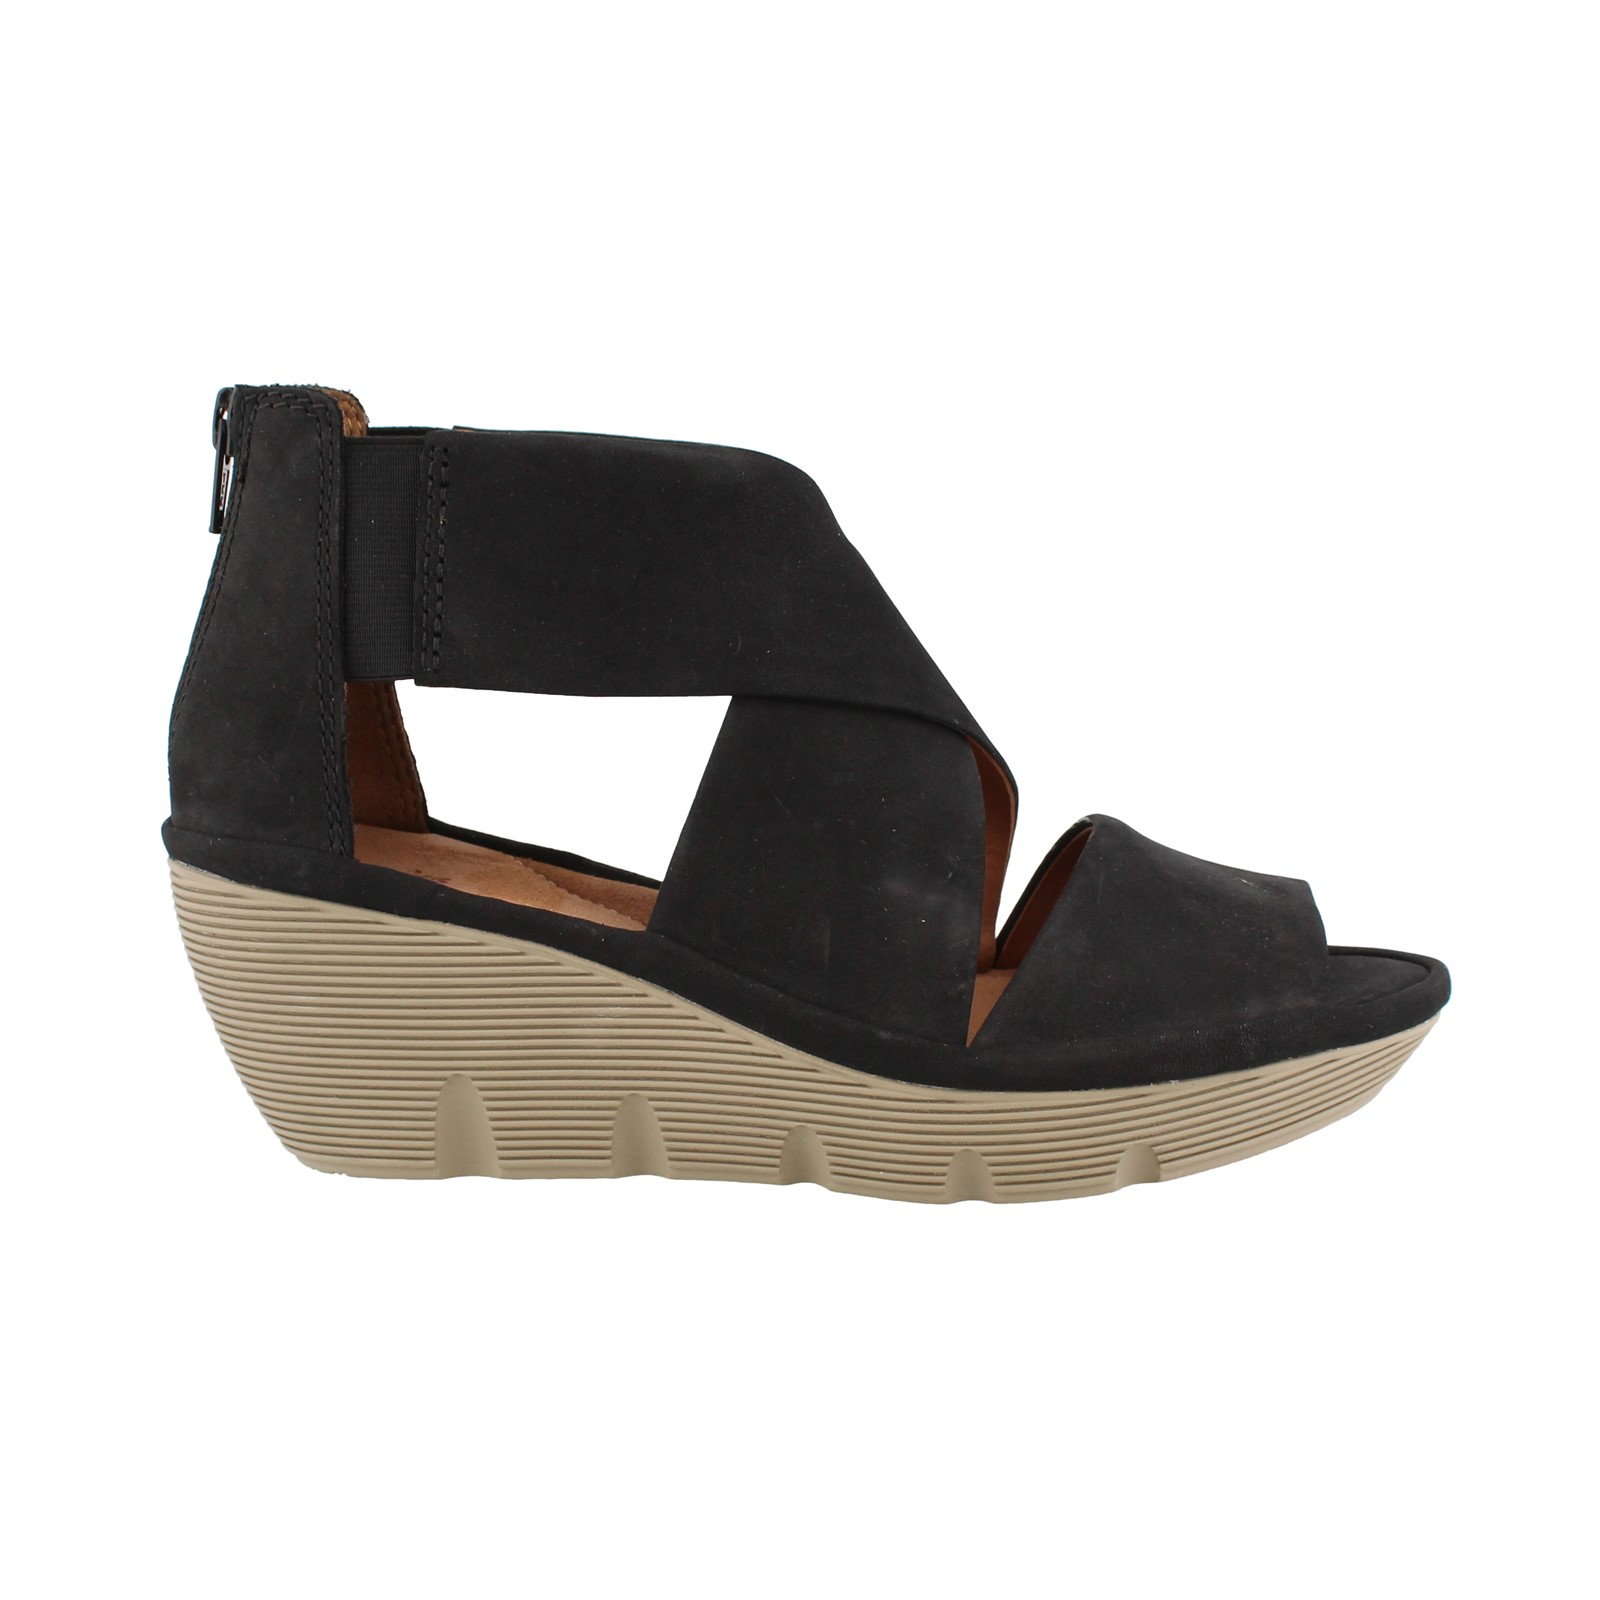 Women's Clarks, Clarene Glamor Mid Wedge Sandals